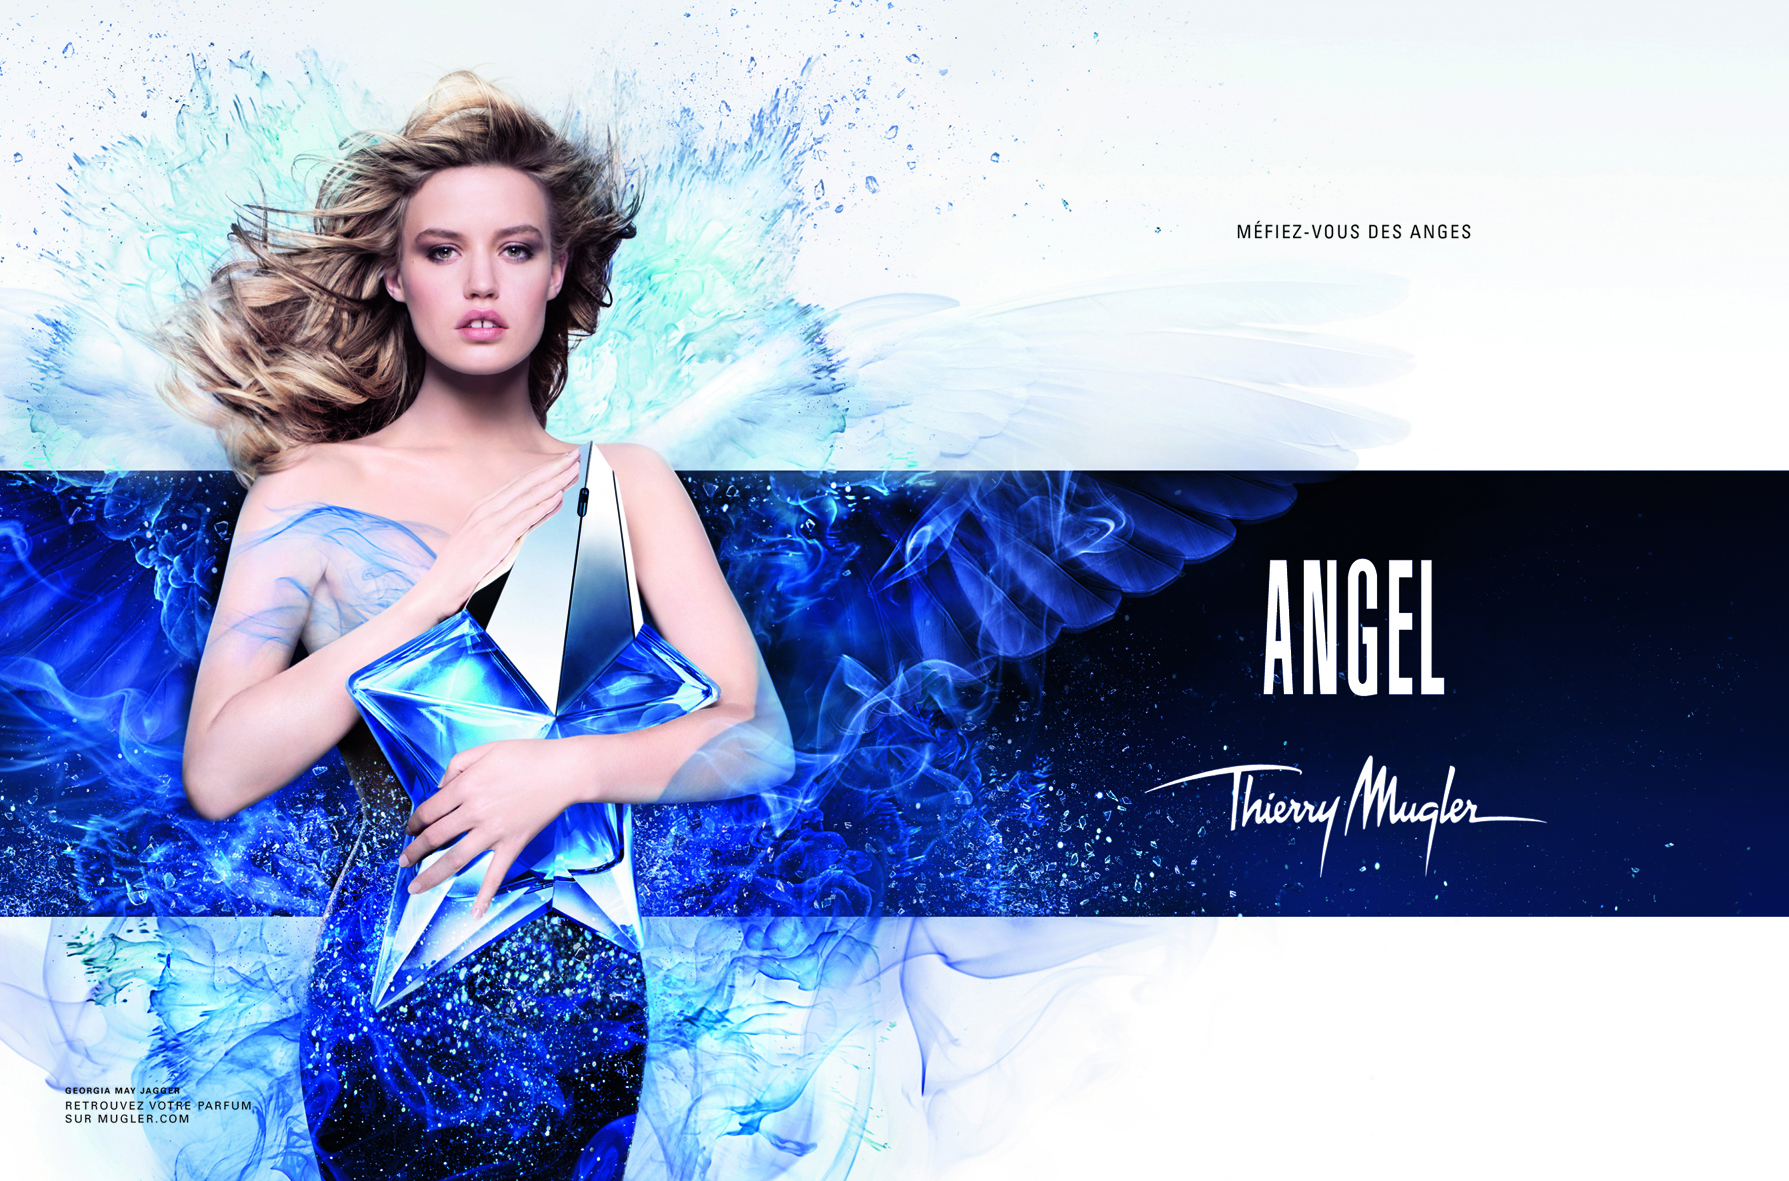 Visual de Angel, de Thierry Mugler, con Georgia May Jagger